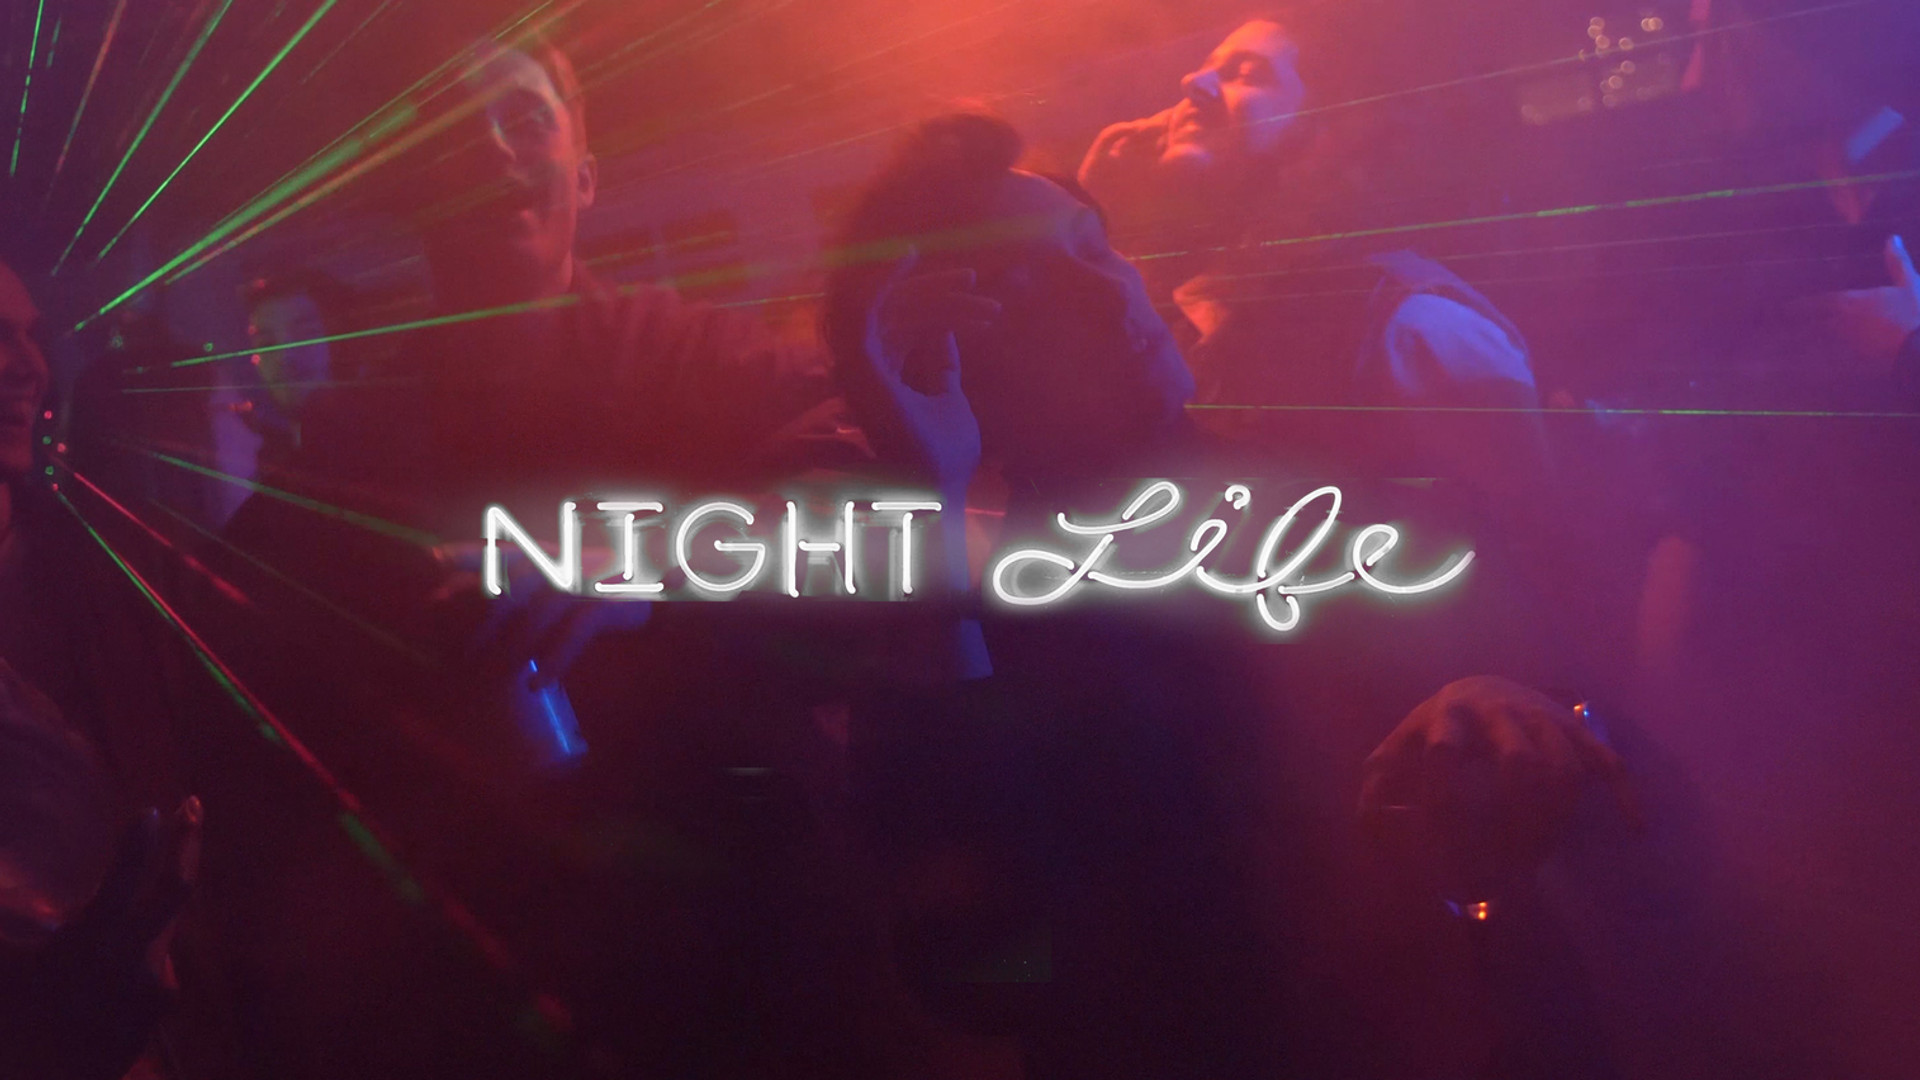 Night Life - Fluencie (feat. Daym)